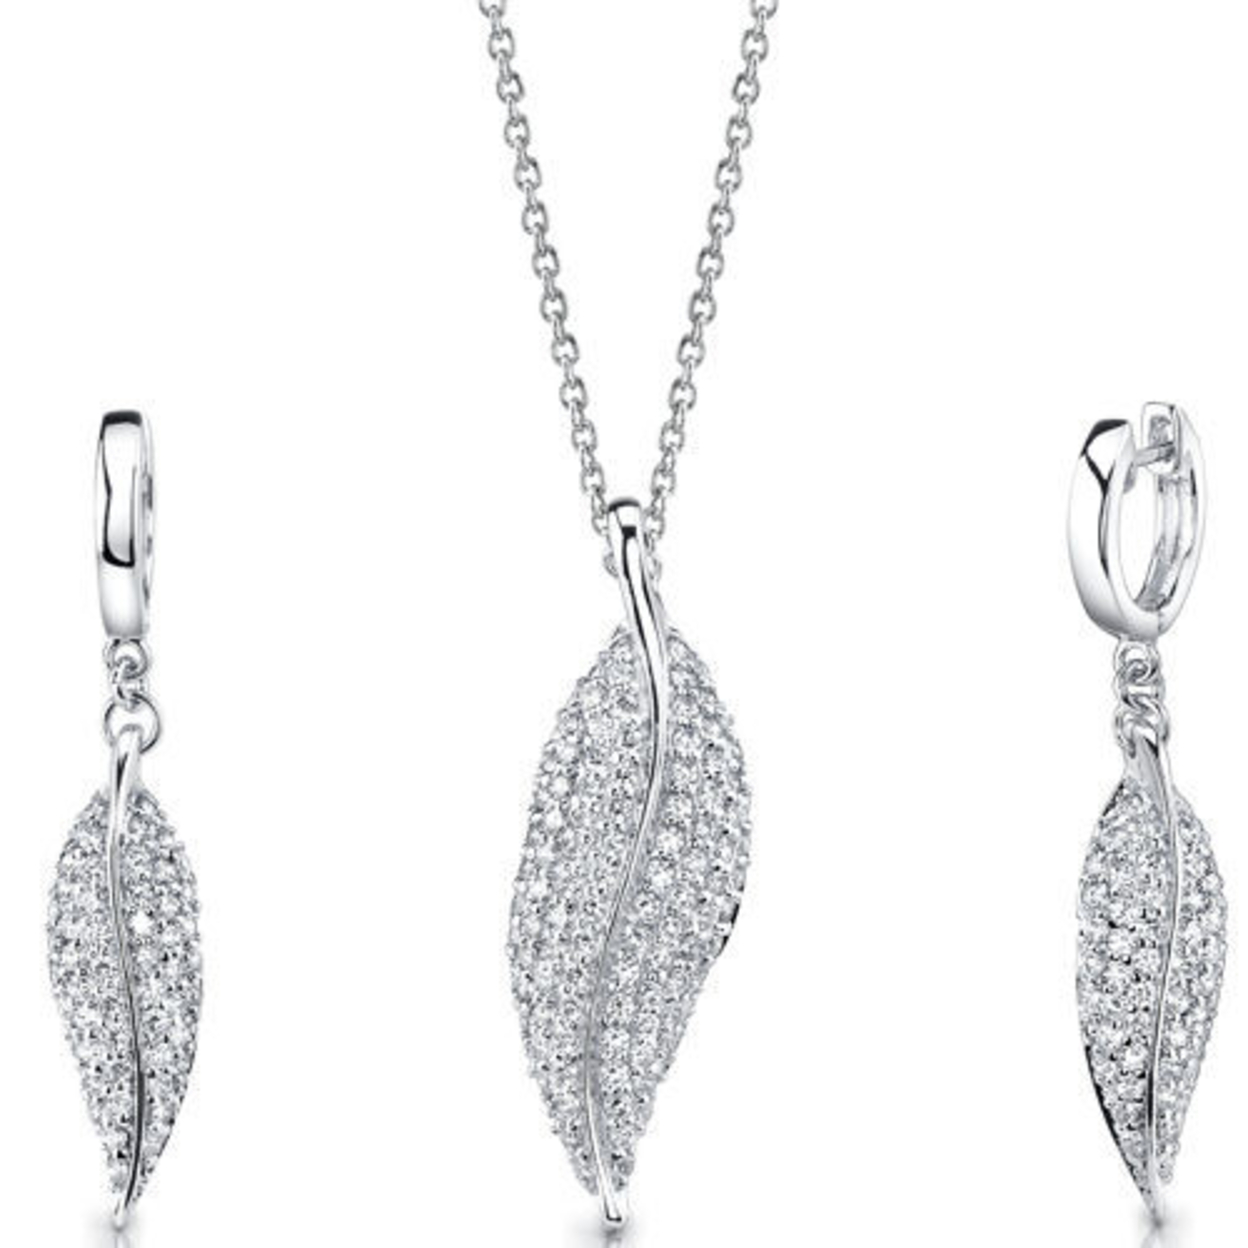 Sterling Silver Leaf Pendant Earrings Set With Cz Style Ss3110